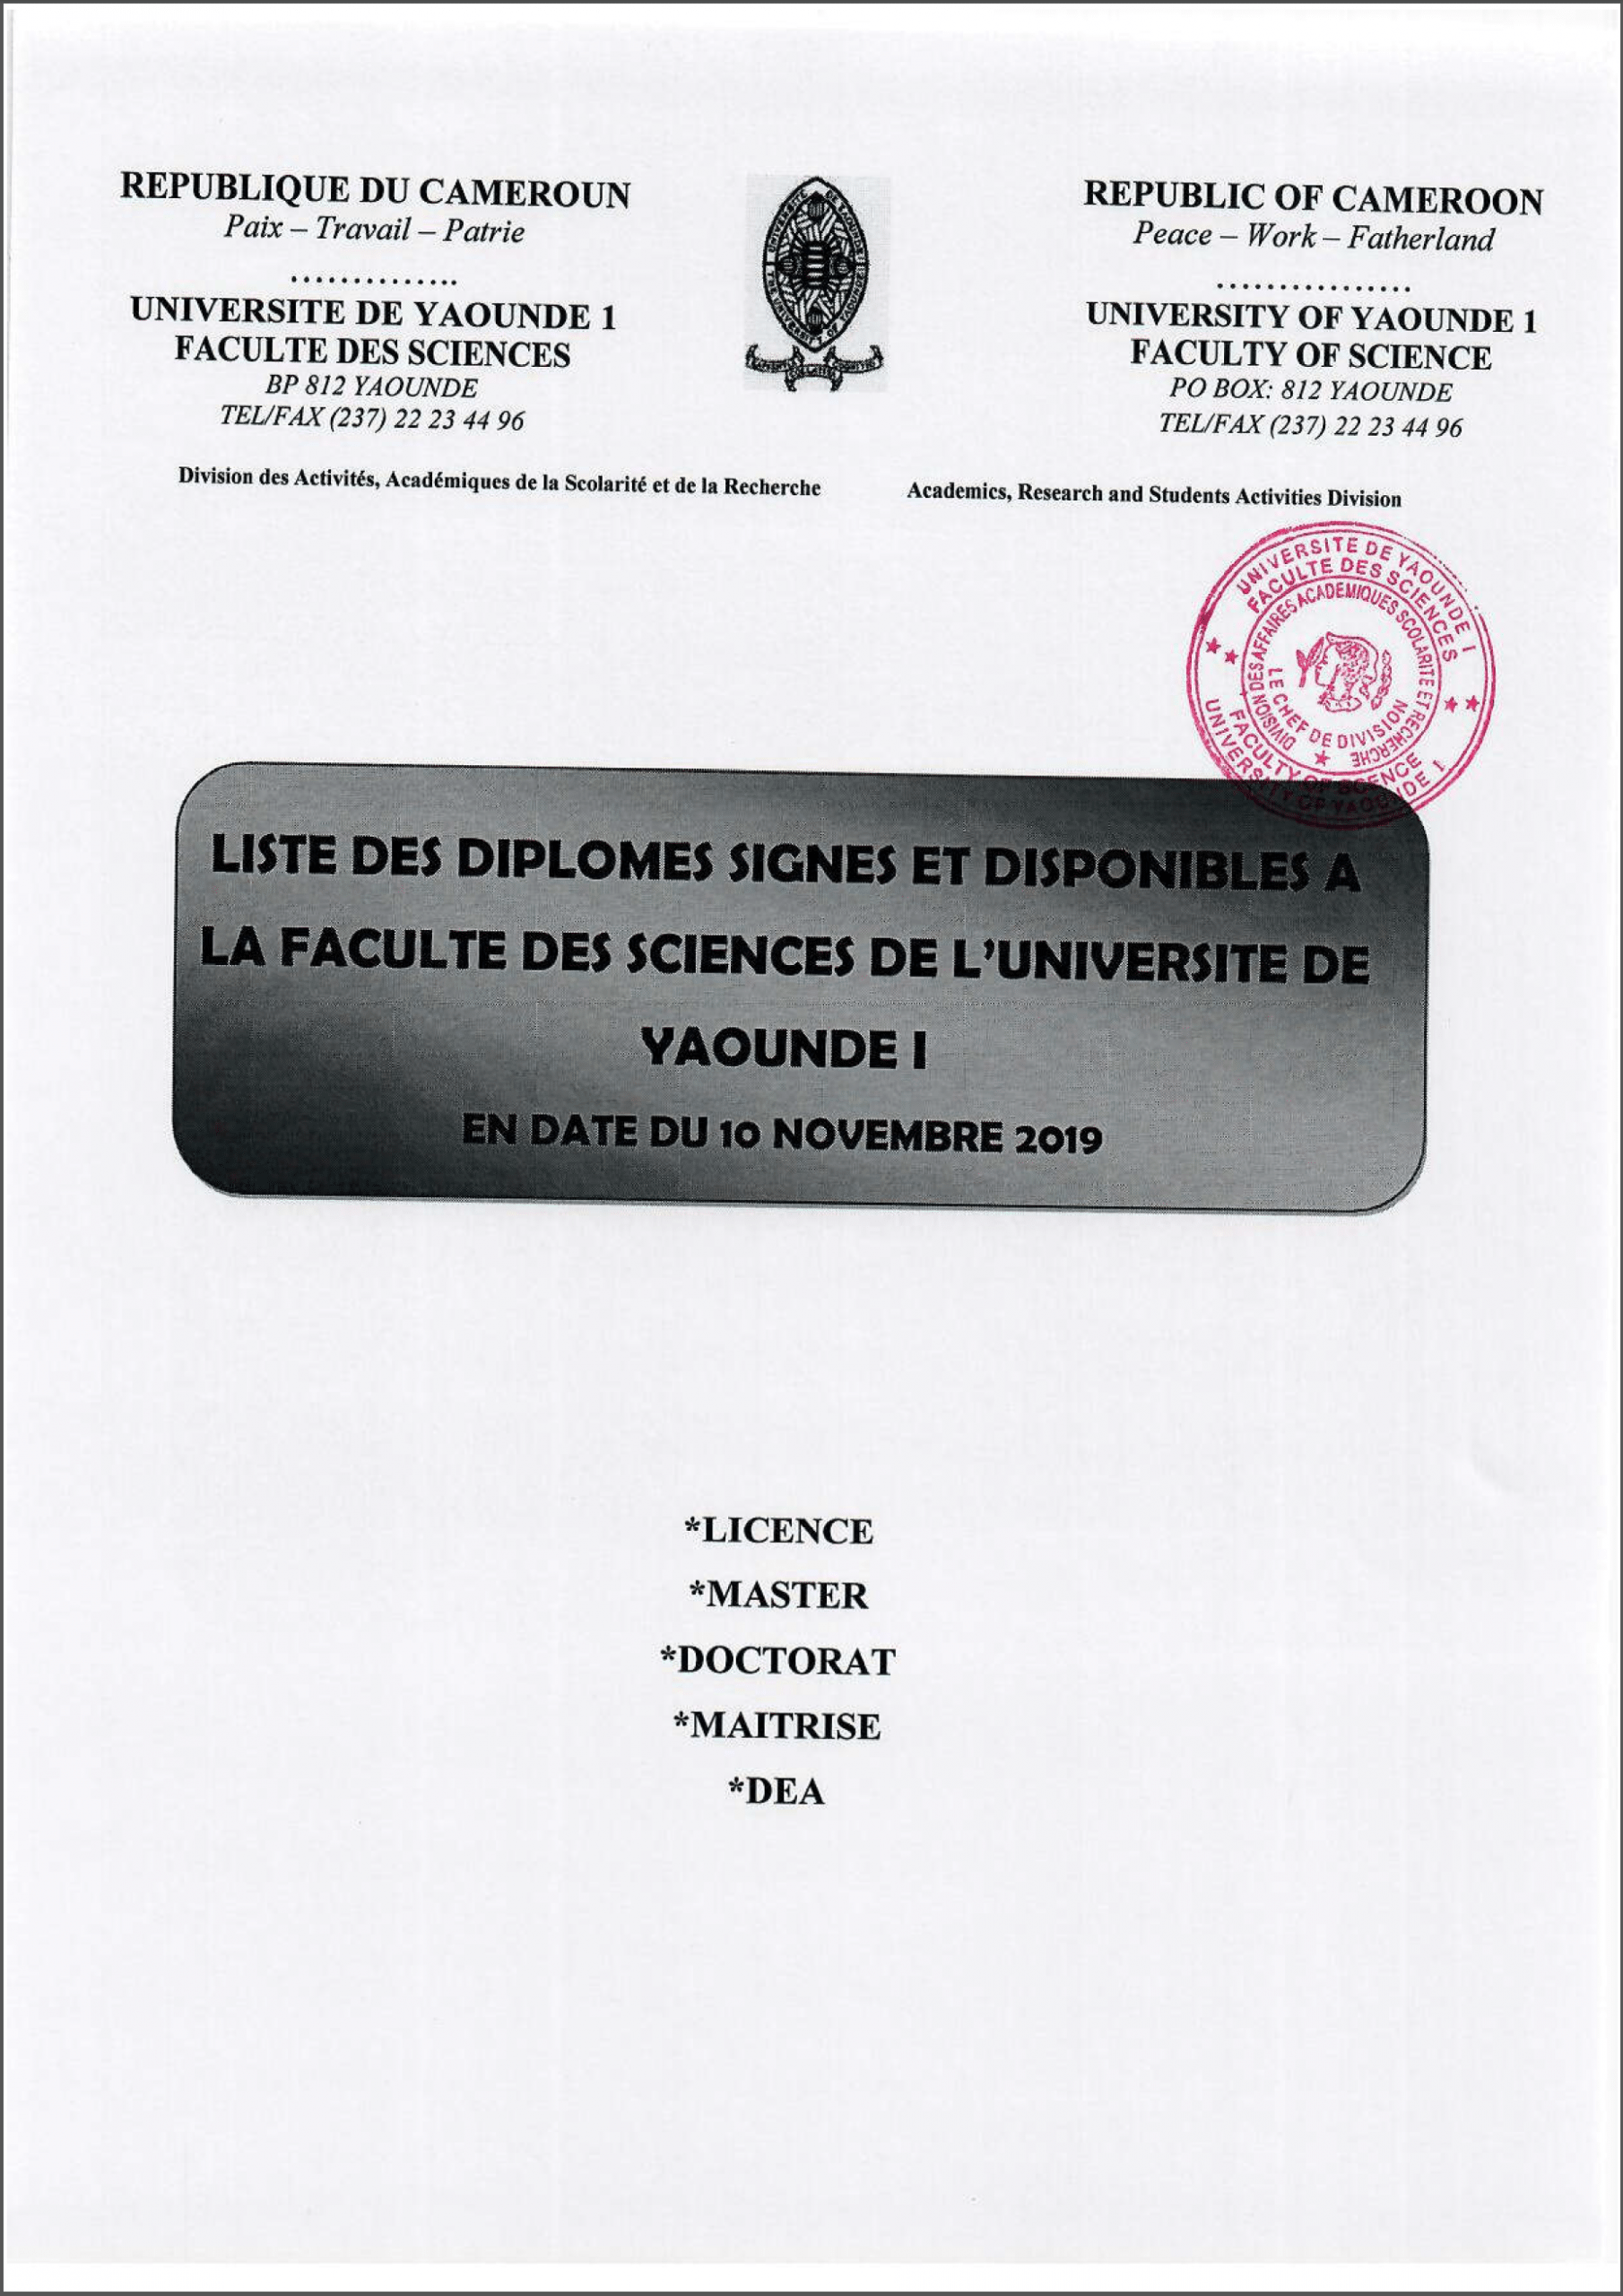 List of Signed and Available Diplomas of the Faculty of Sciences